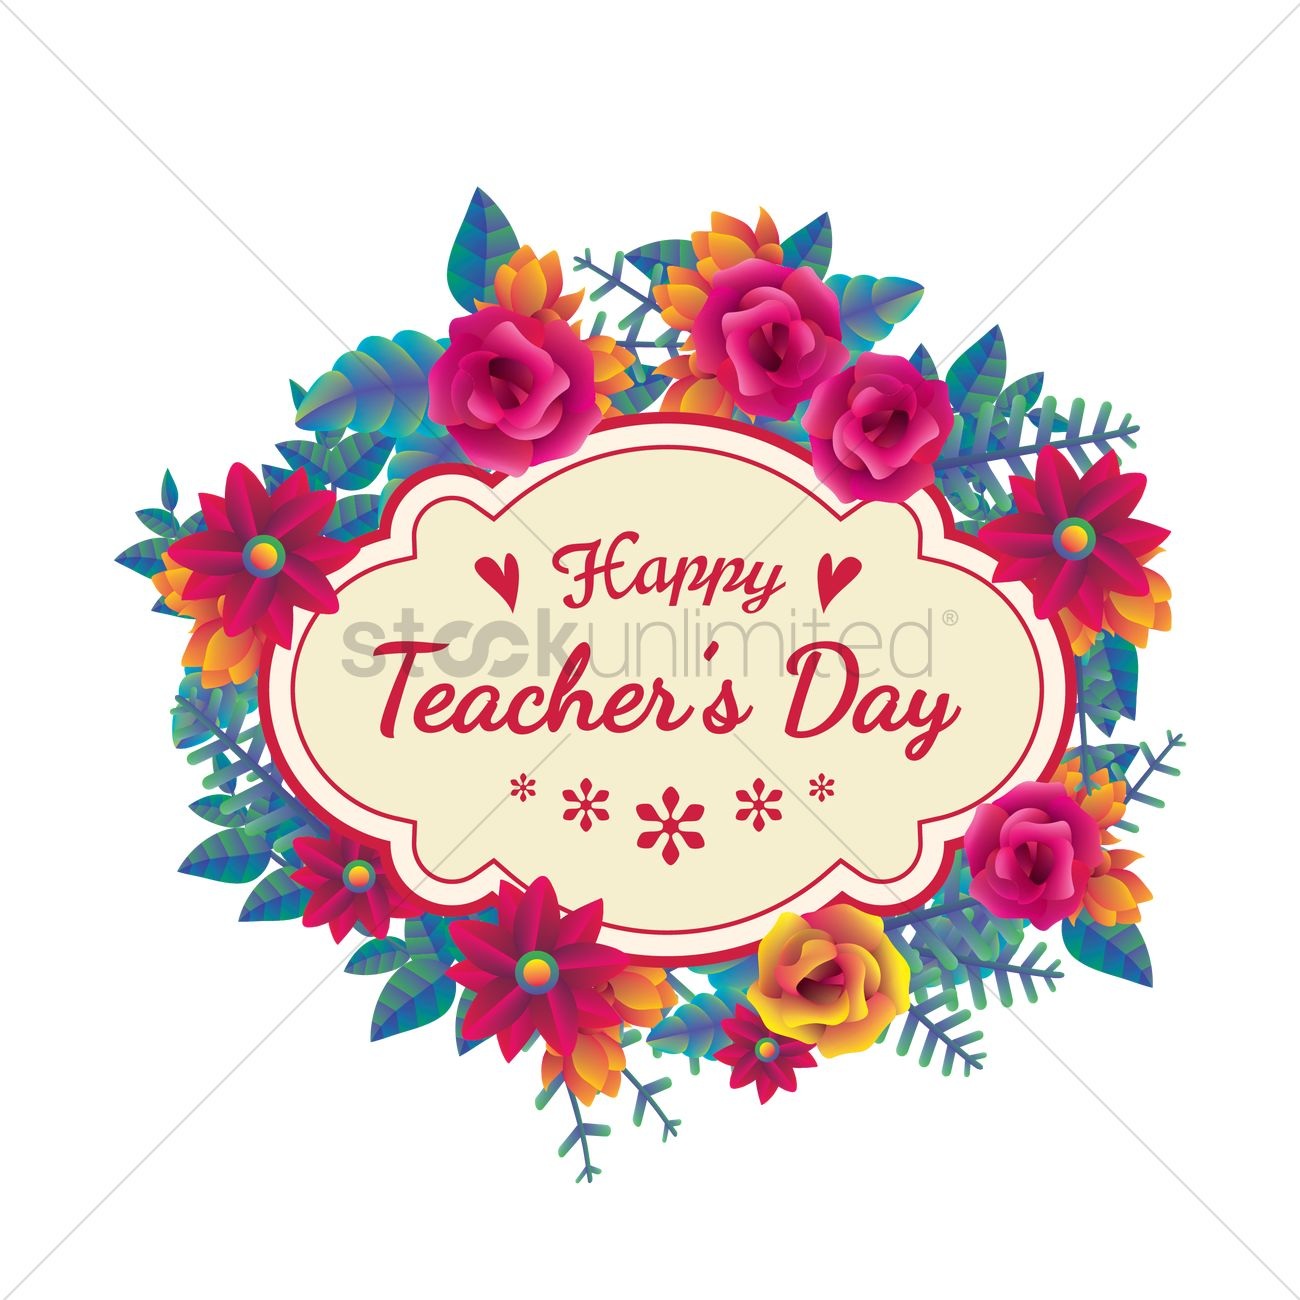 Happy Teachers Day Design Vector Image 1968167 Stockunlimited